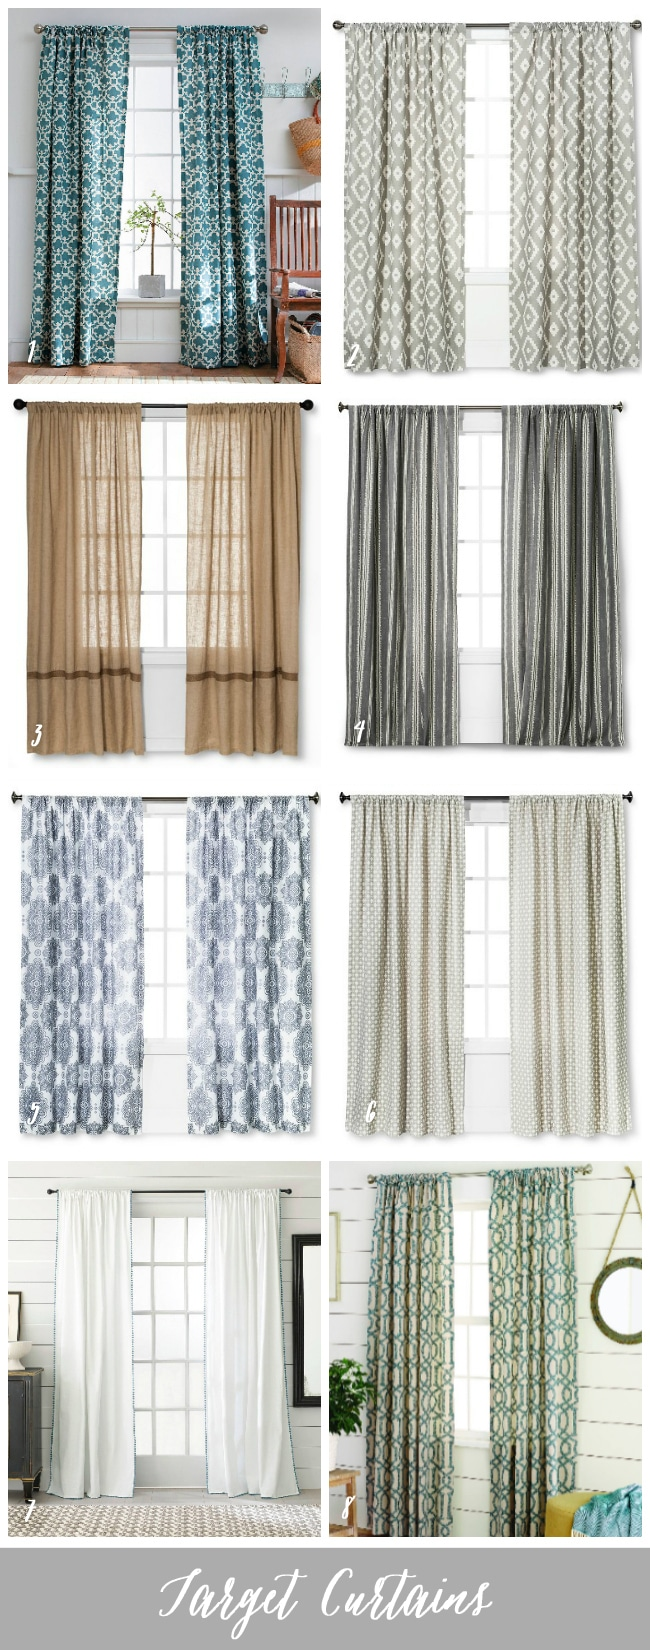 Target Curtain Panels The Question Of Curtain Panels The Inspired Room